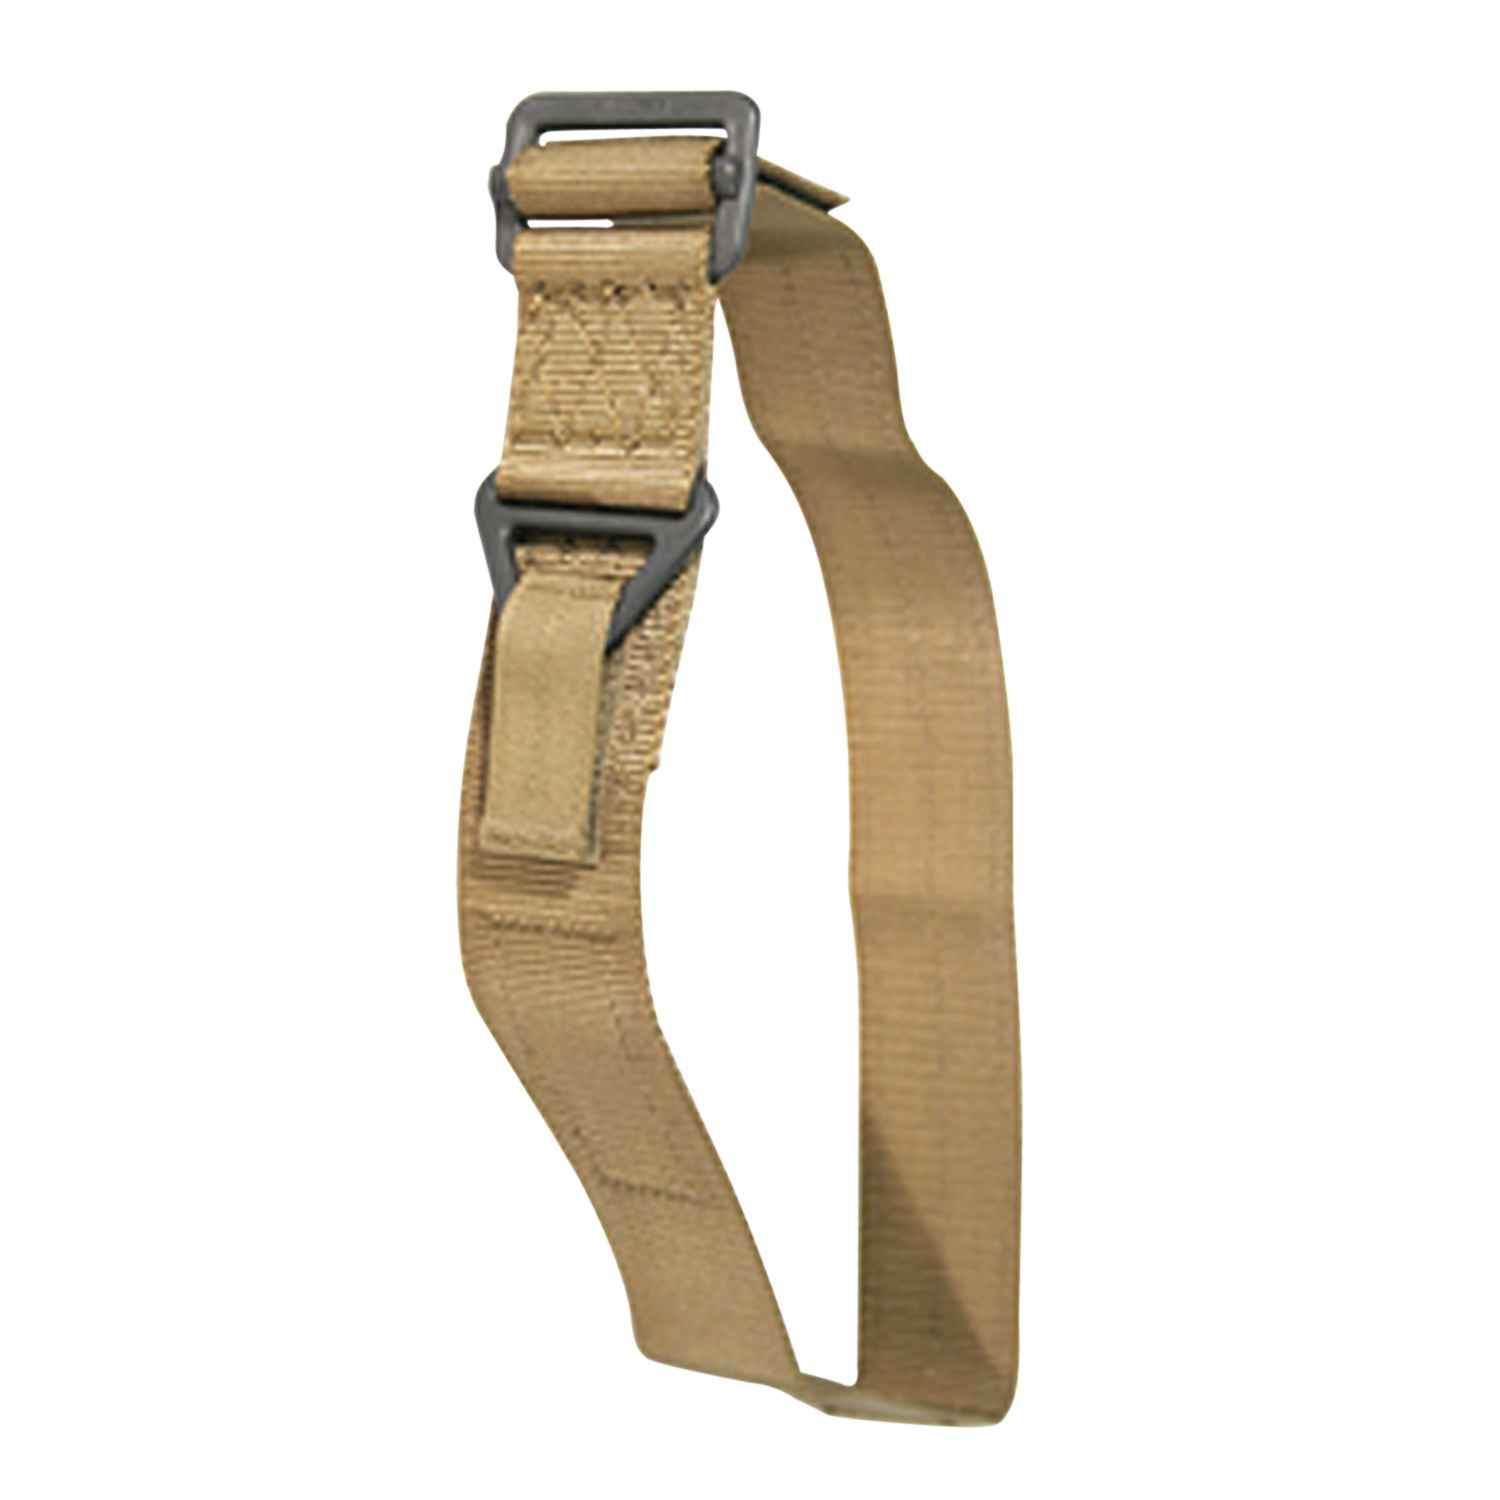 Blackhawk CQB Rescue Belt, Large, Coyote Tan